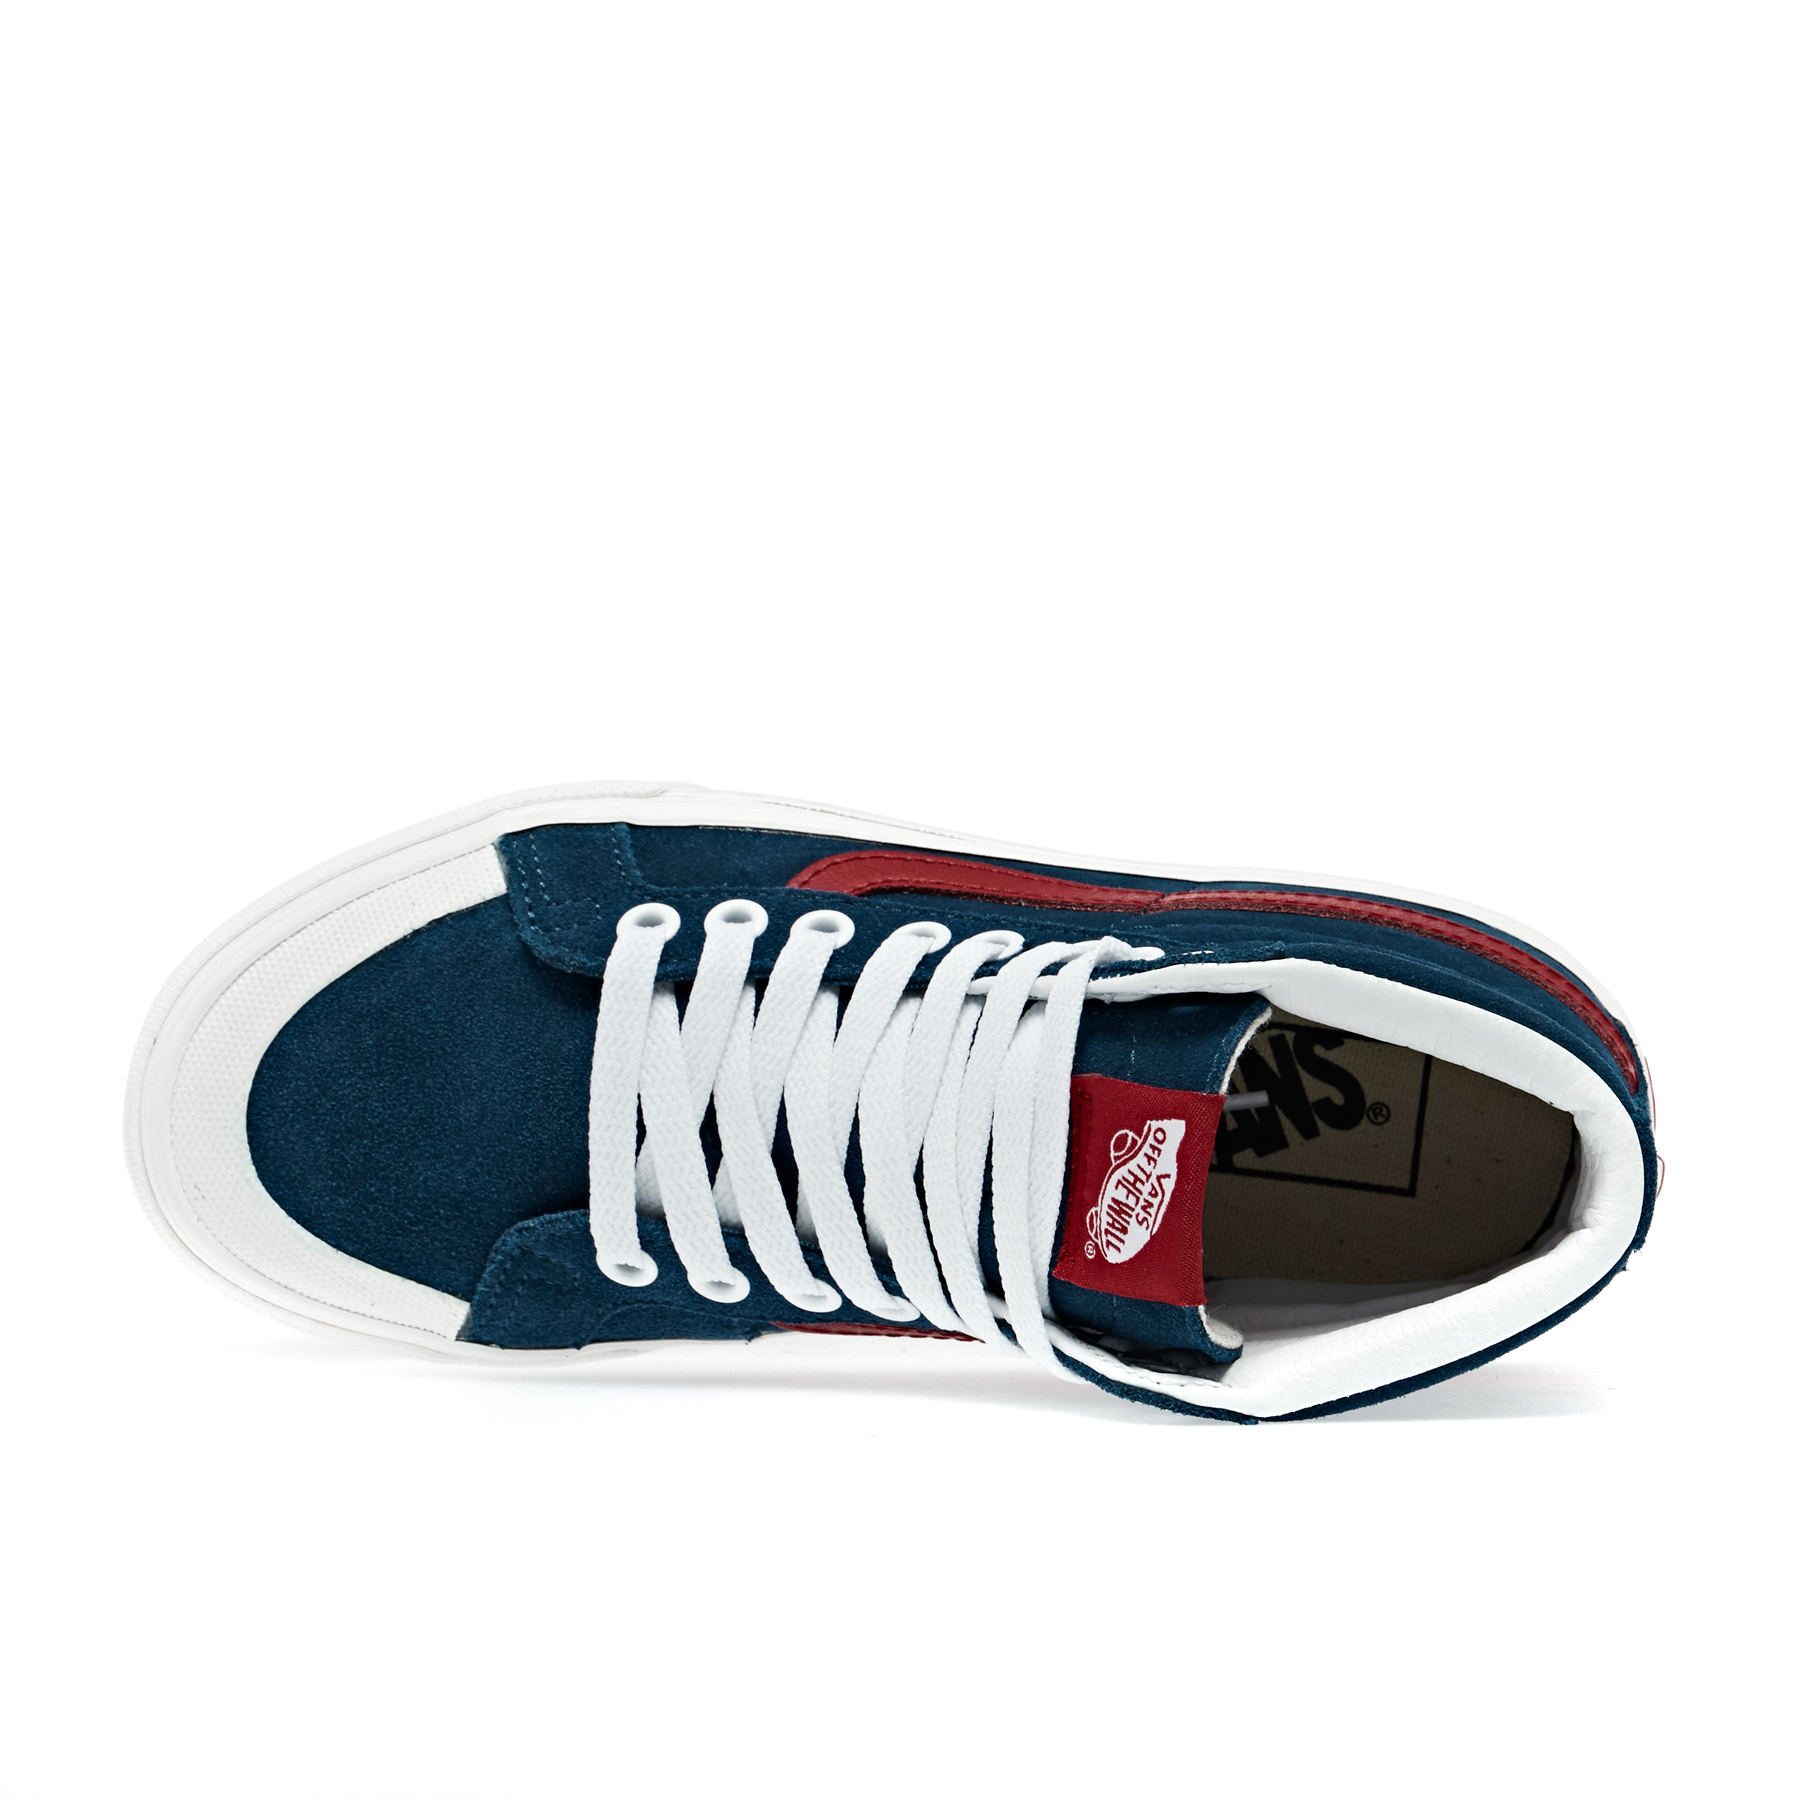 Vans Sk8 hi Reissue 138 Schuhe (sailor Bluetango Red